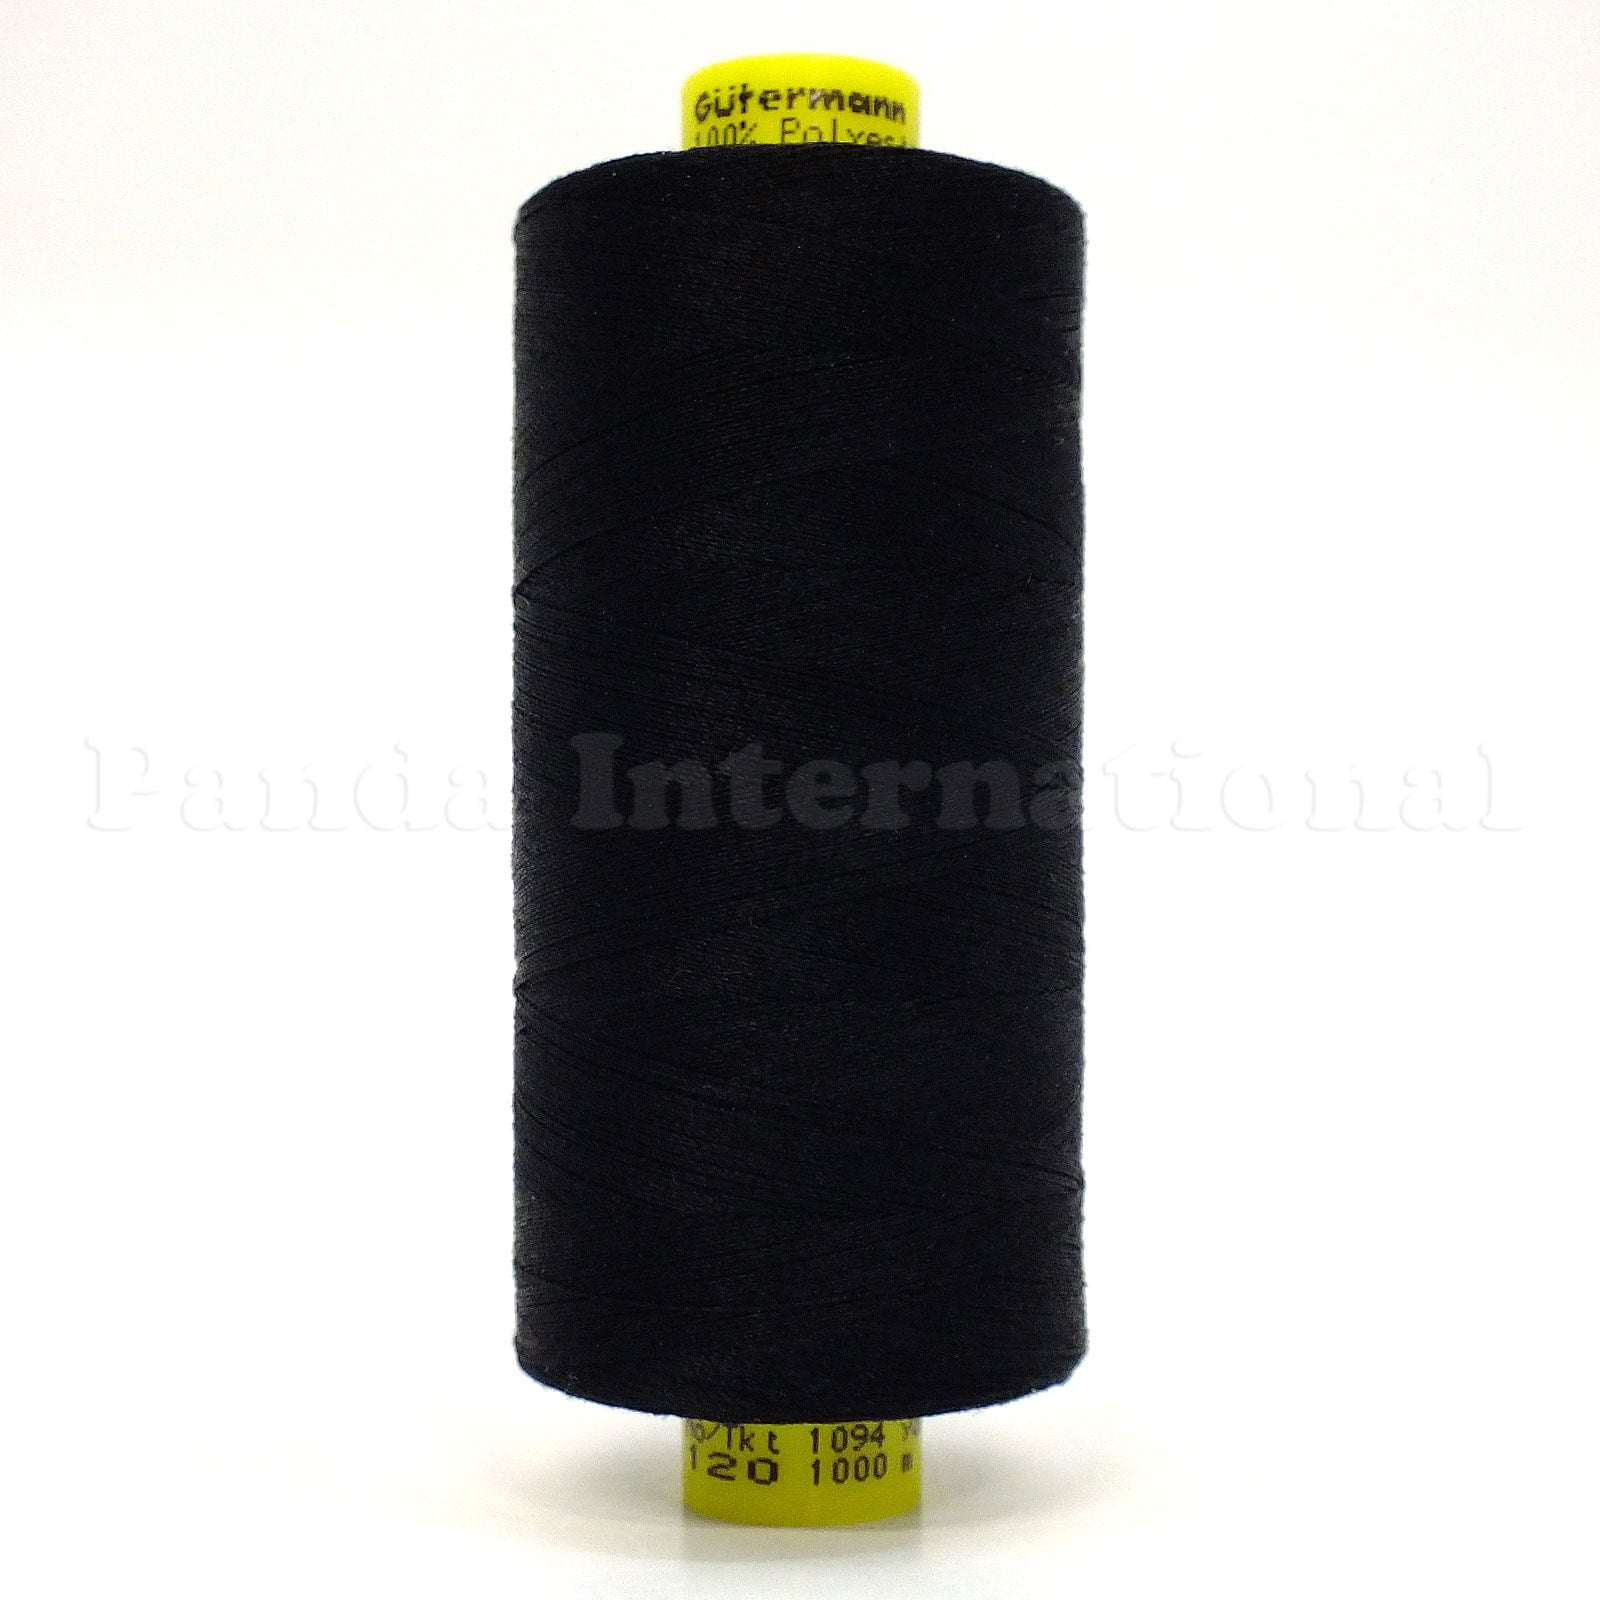 Gutermann Mara 120 1,000m - BLACK - WHITE